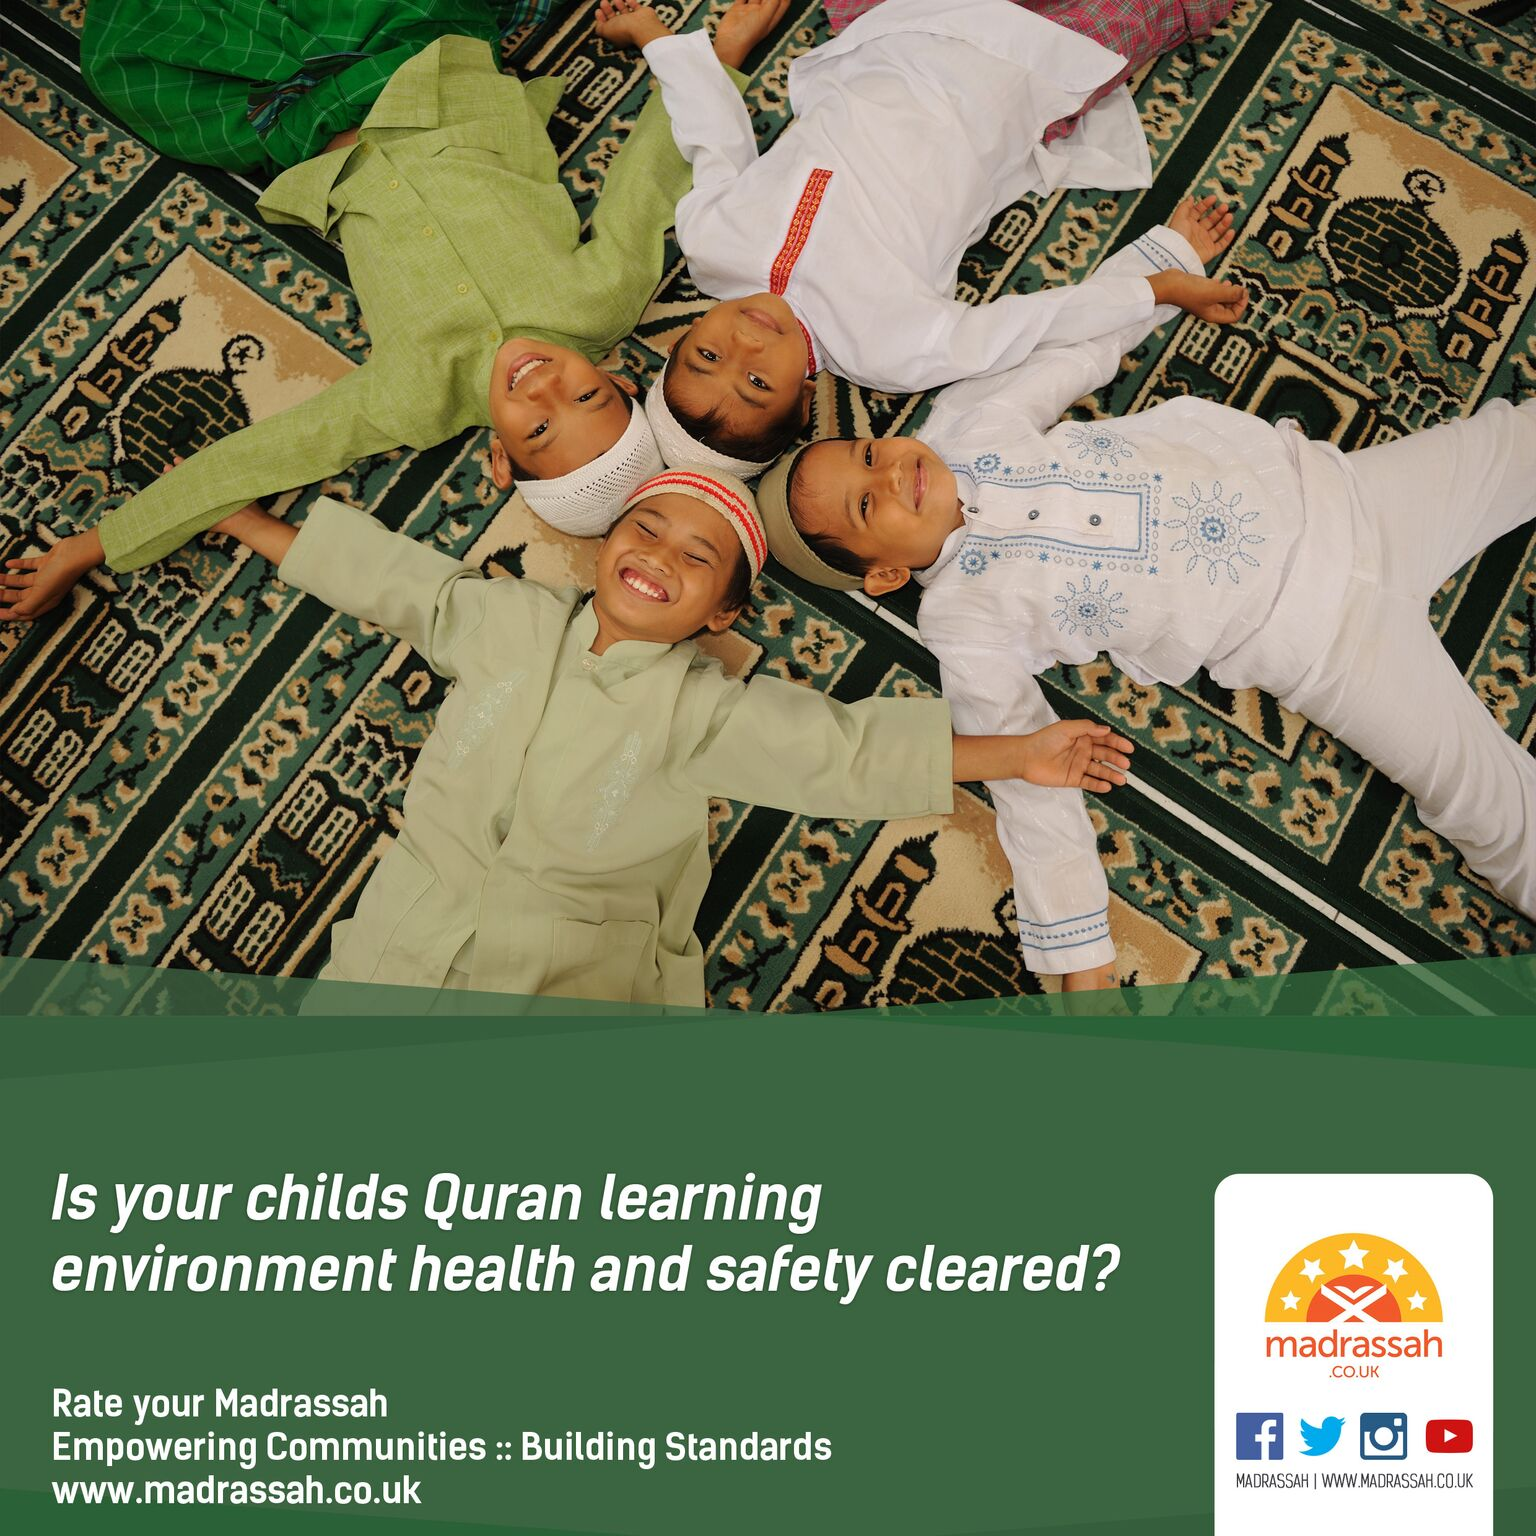 Is your child's Quran enviornment health and safety cleared